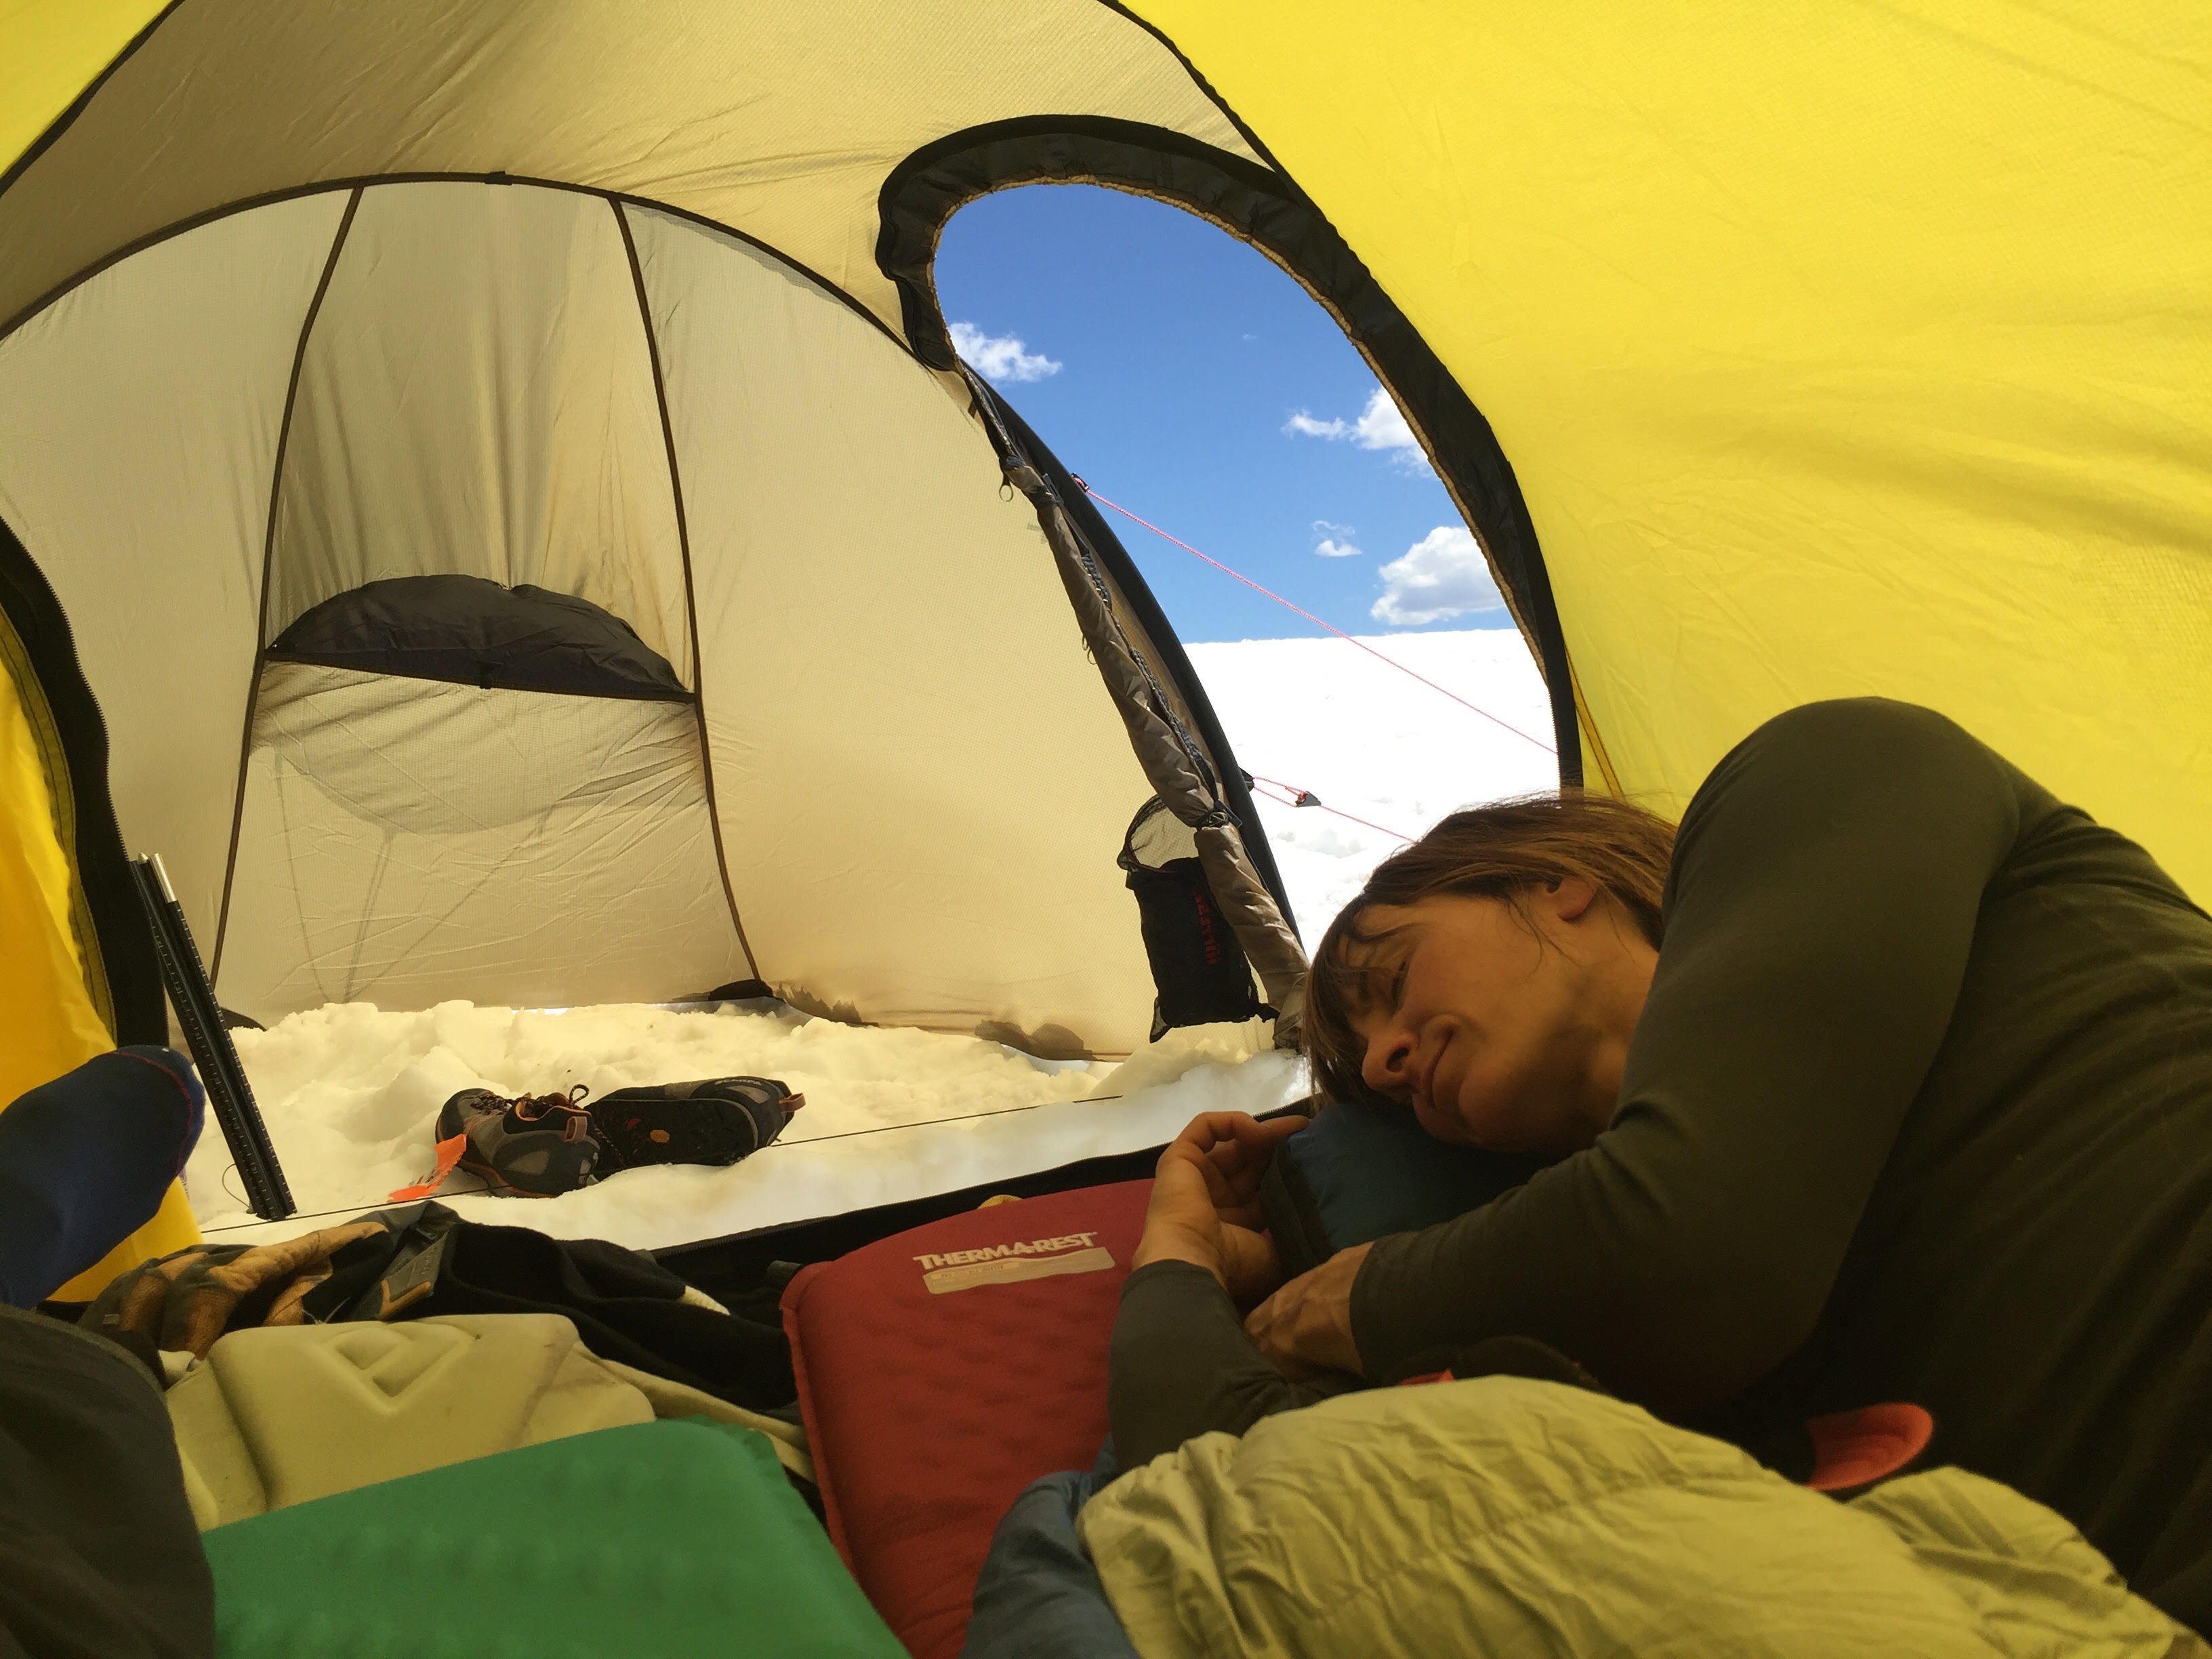 Mary Harlan dozes in the Hilleberg Nammatj 2 GT with the door open to the roomy & The Hilleberg Nammatj 2 GT: A well-designed expedition shelter ...